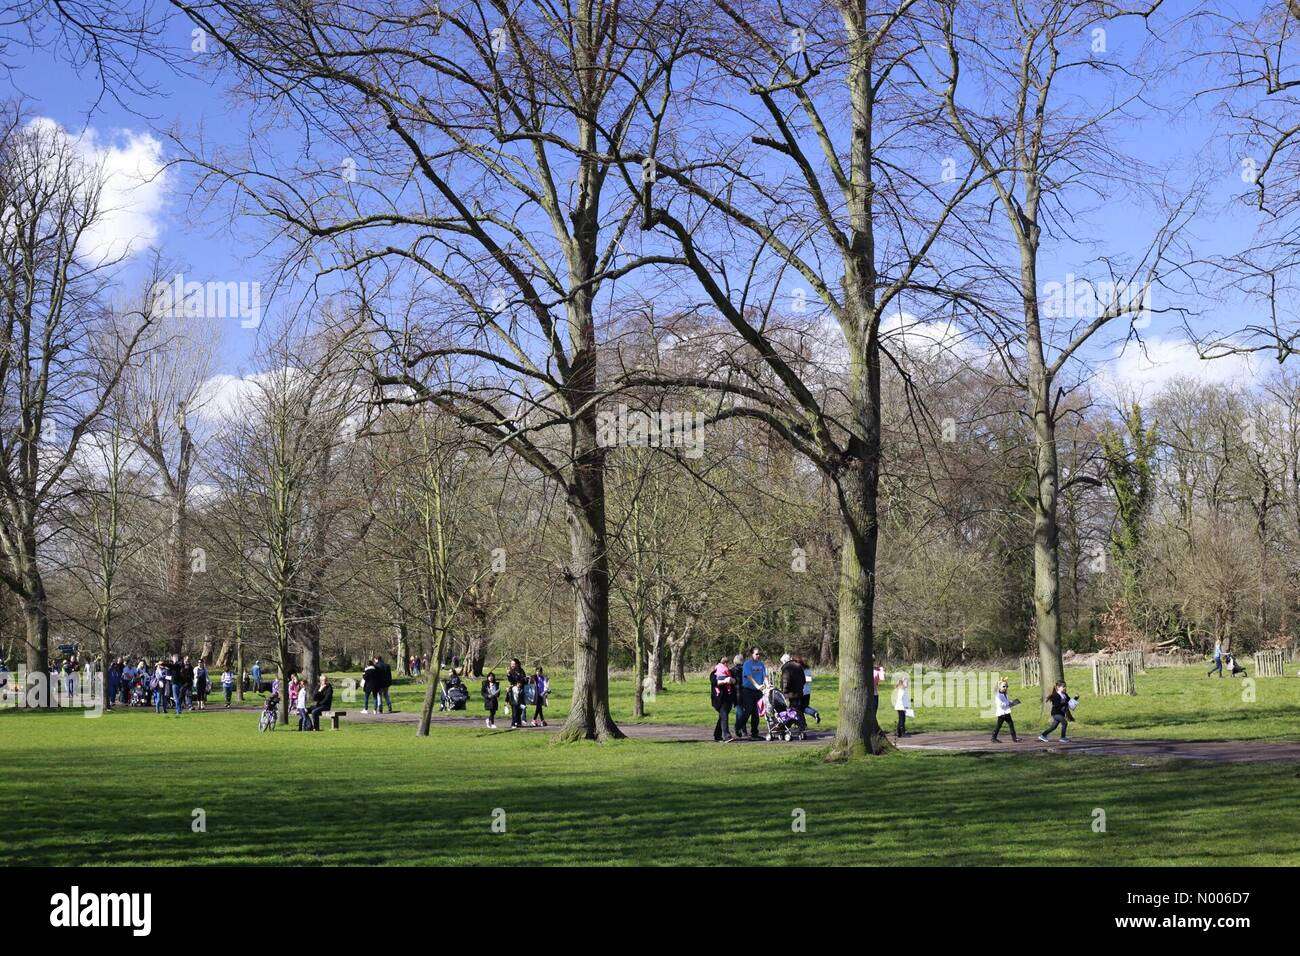 Wimbledon, London, UK. 25th March, 2016. Families out enjoying the lovely Good Friday sunshine in Morden Hall park, Stock Photo